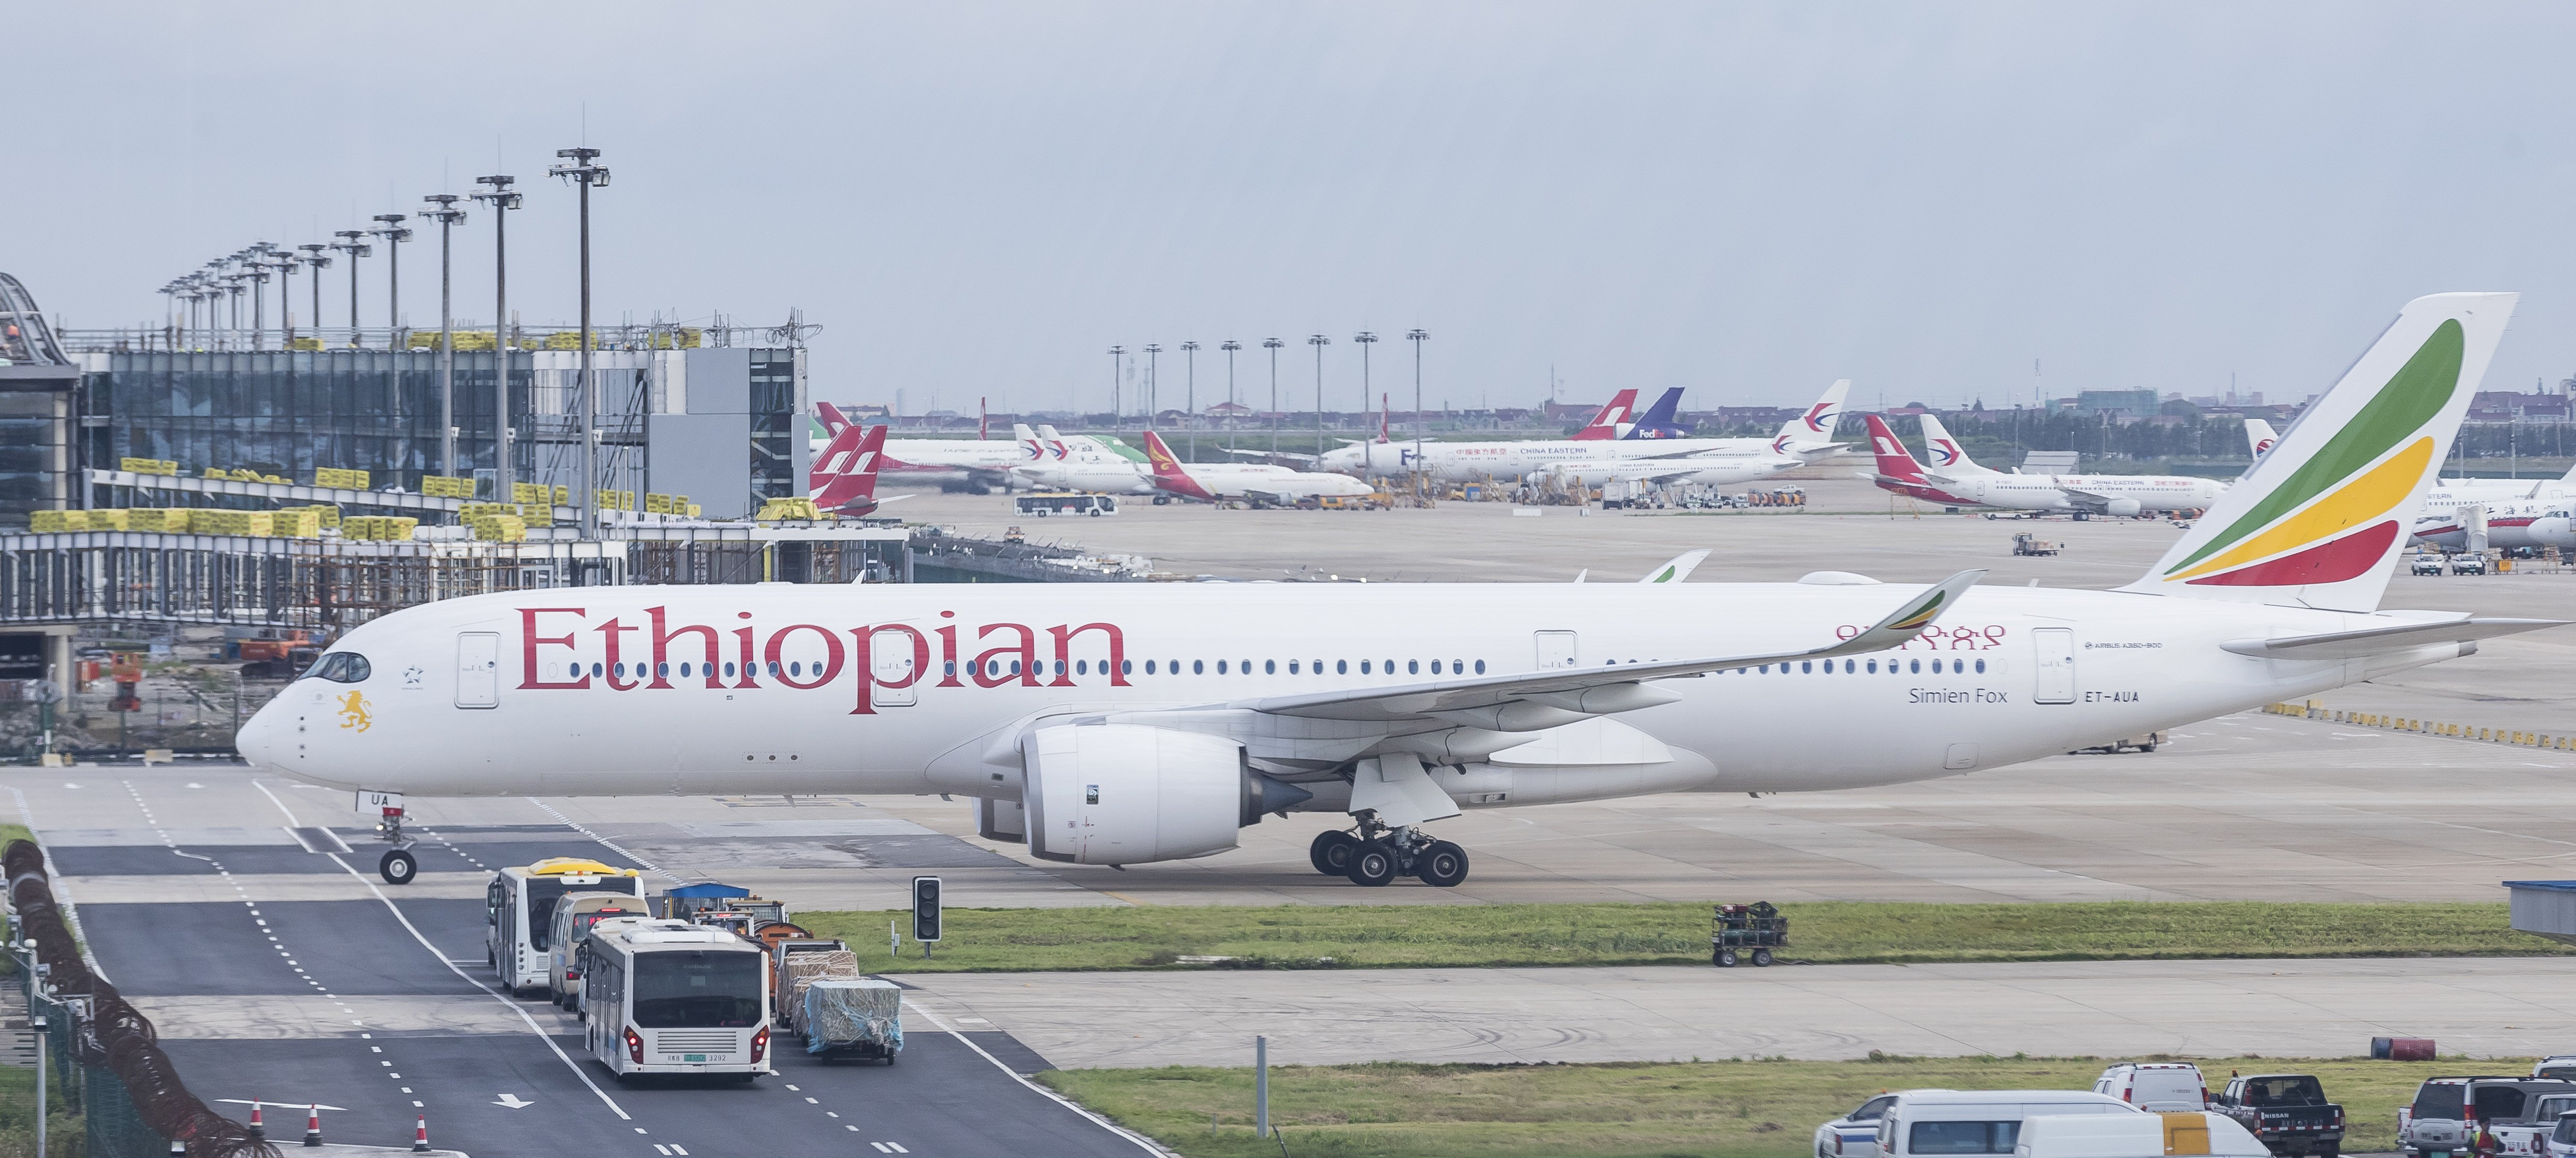 An Ethiopian Airlines aircraft at the airport | Photo: Getty Images